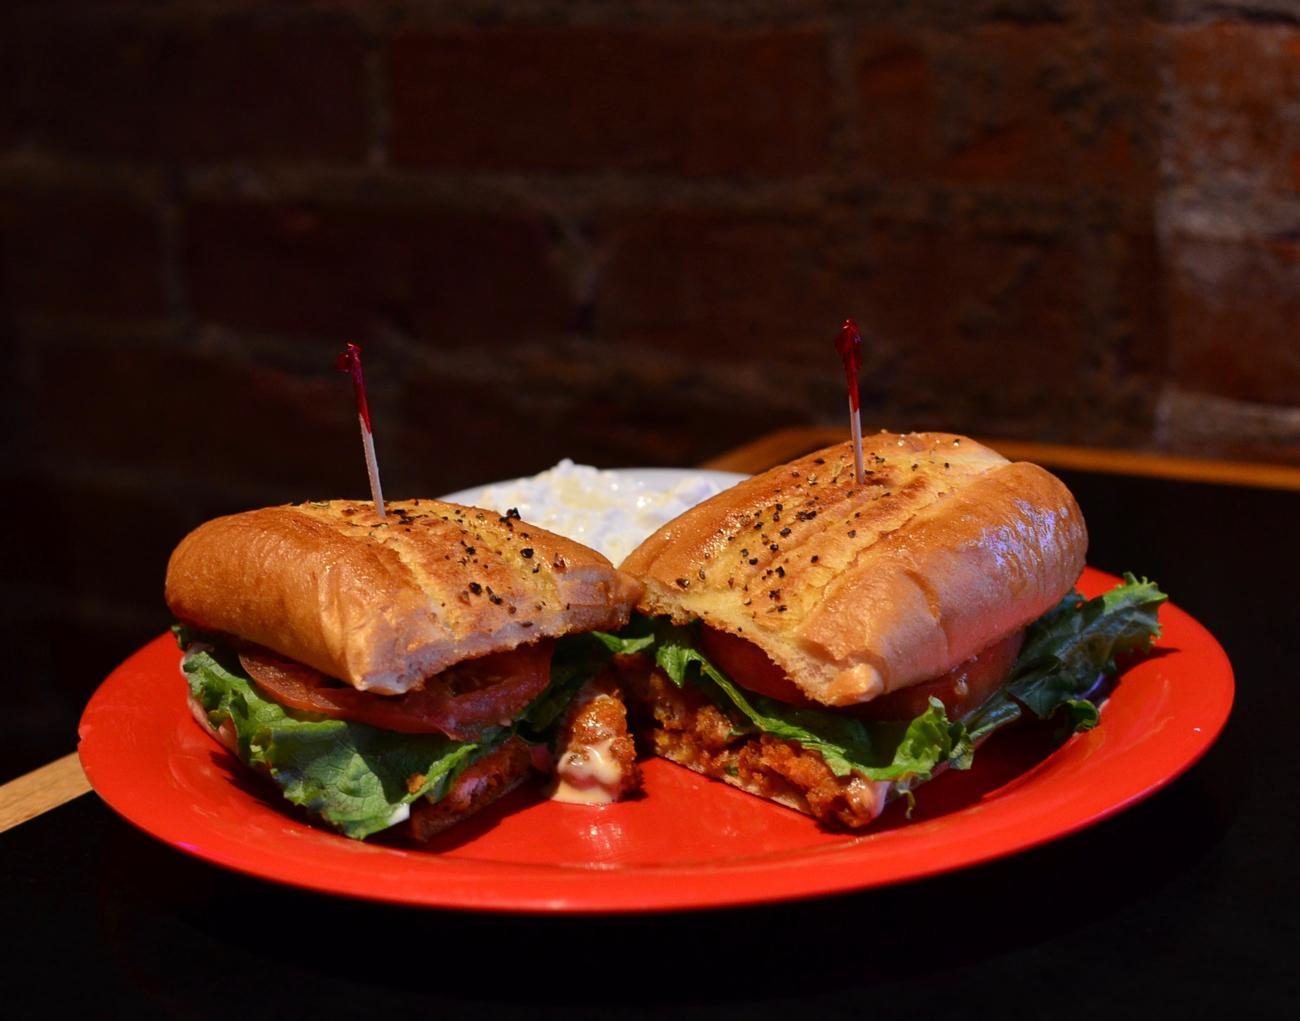 Buffalo Chicken Sandwich: spicy chicken tenders, lettuce, tomato, and ranch dressing served on a seasoned hoagie bun / Image: Leah Zipperstein, Cincinnati Refined // Published: 12.7.17